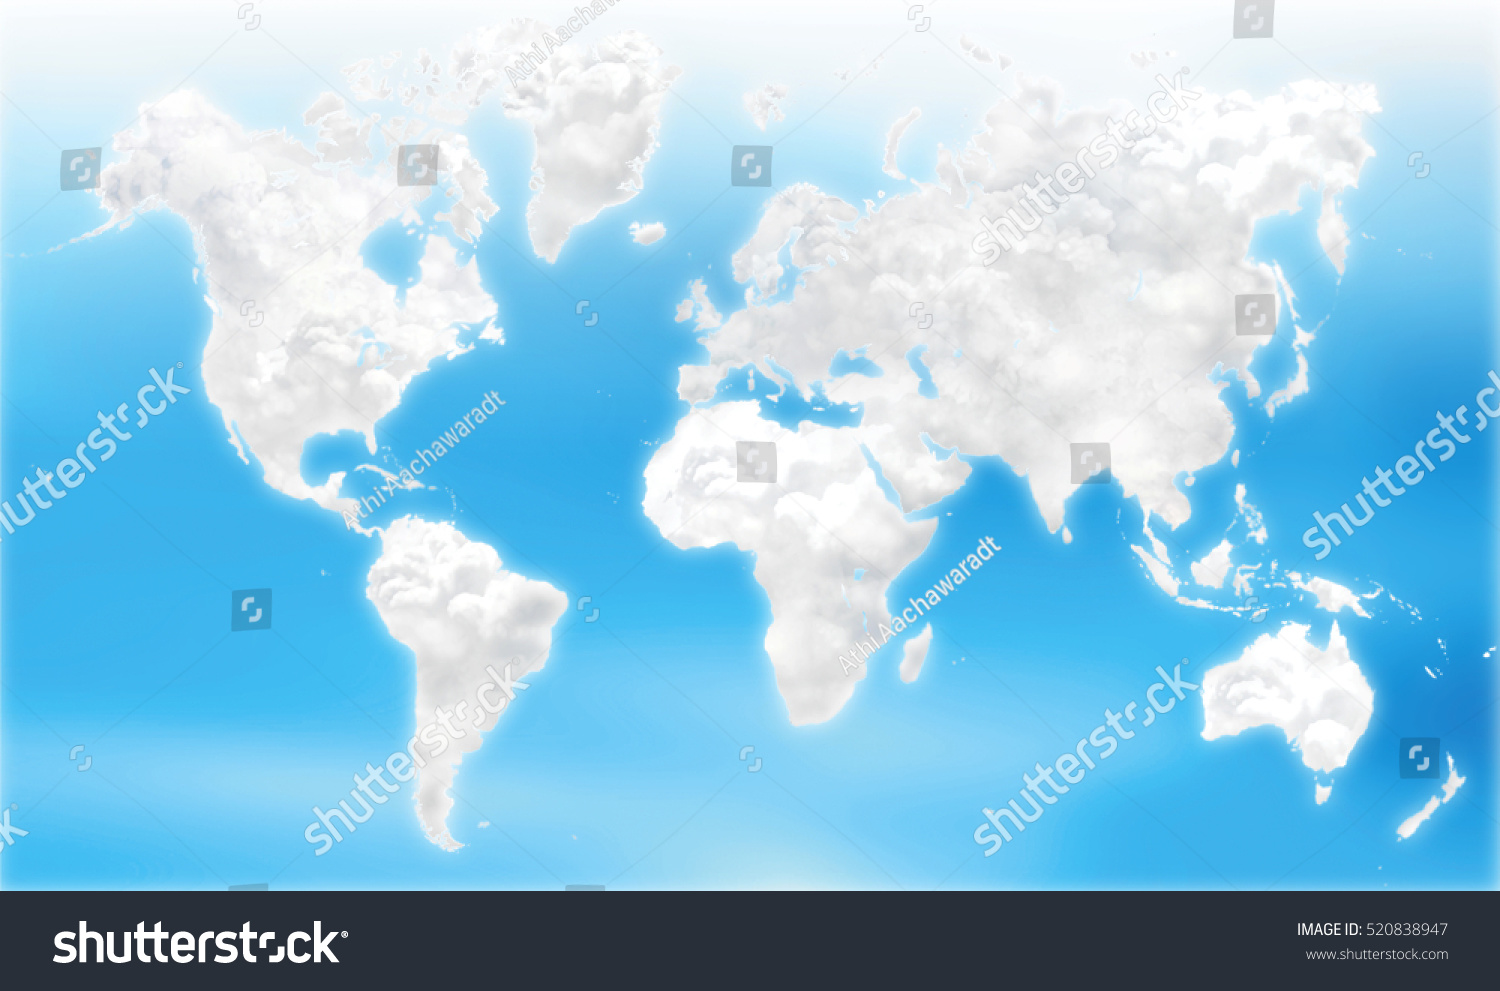 Cloud atlas cloudy world map geography stock illustration 520838947 cloud atlas cloudy in world map geography environmental concept gumiabroncs Gallery